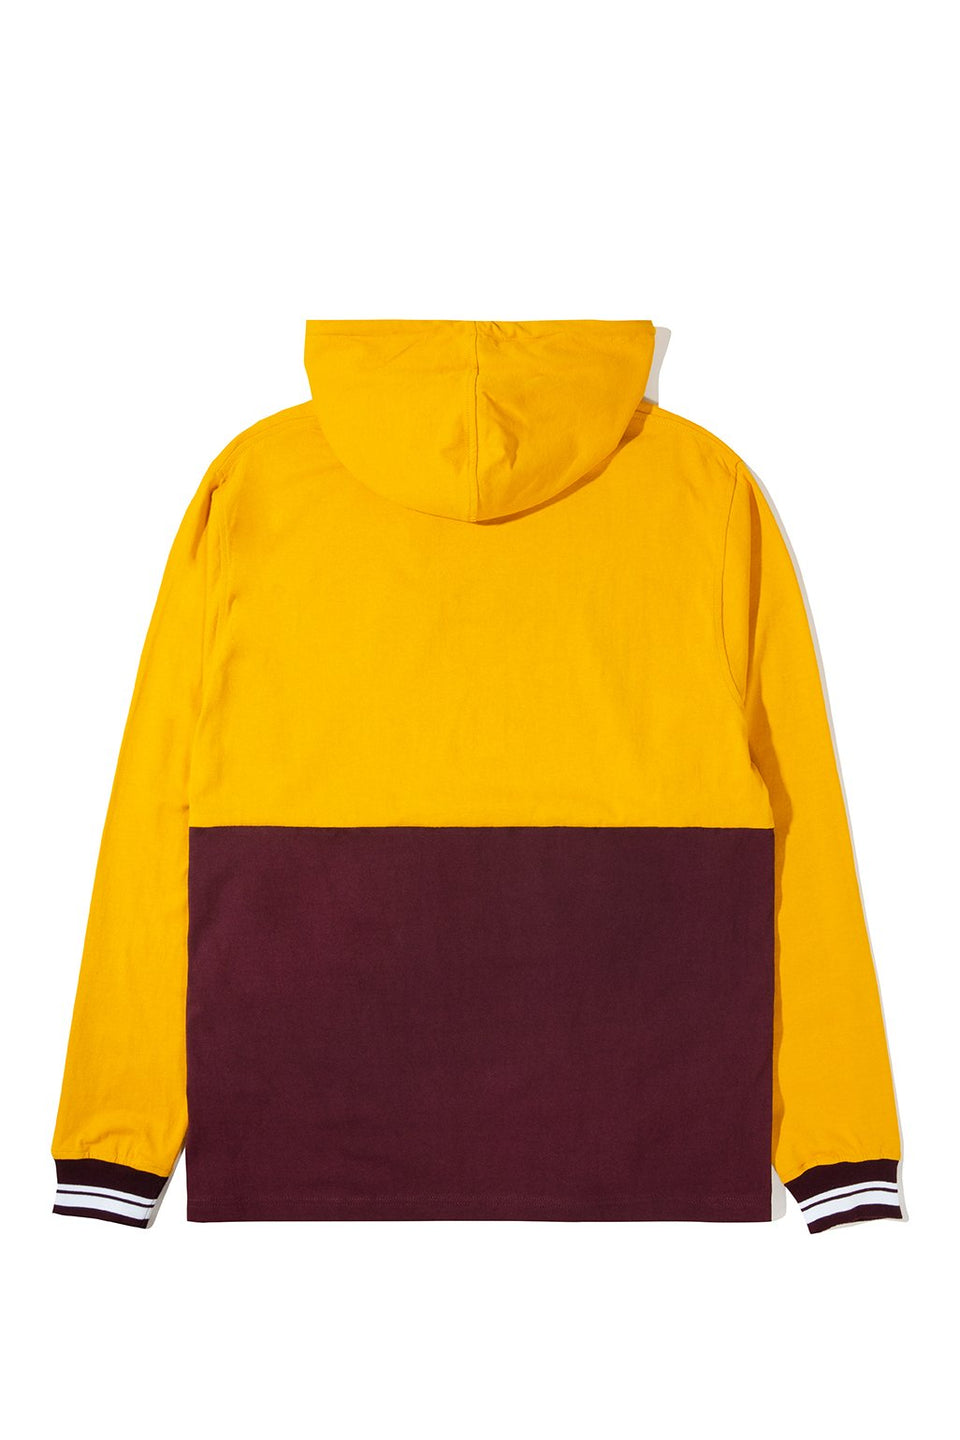 The Hundreds Sub Hooded L/S Shirt TOPS Gold